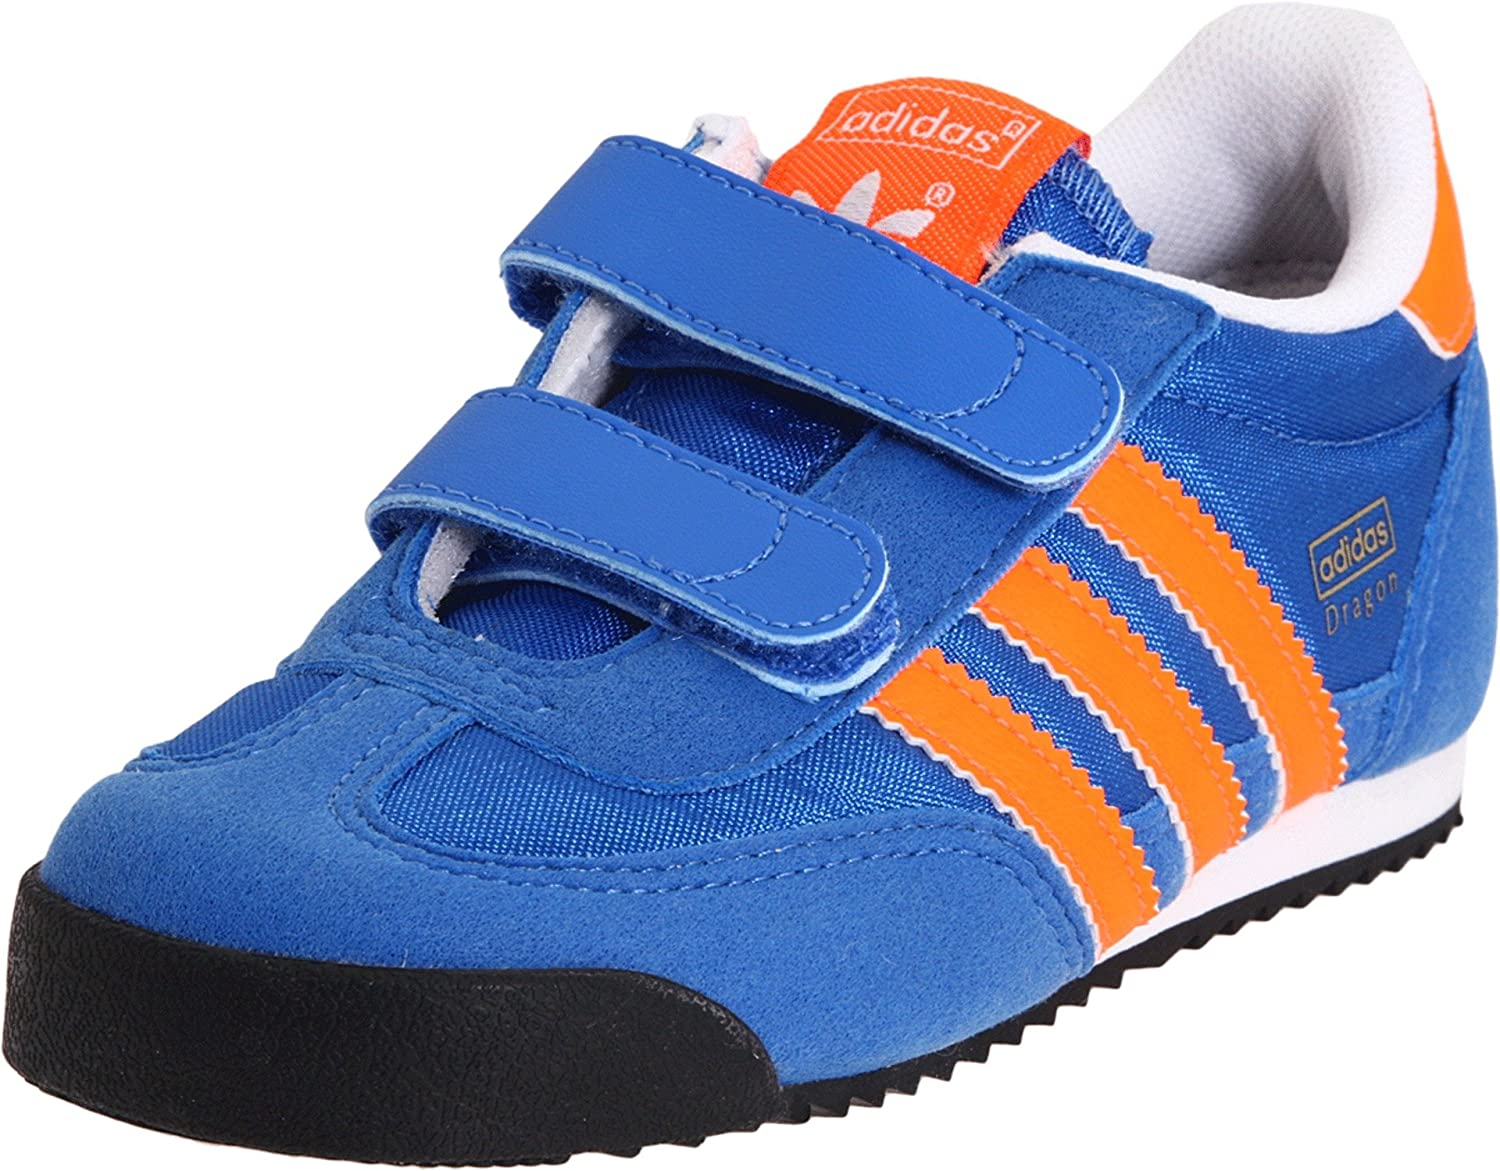 Desaparecido Campo de minas Tranquilizar  Amazon.com | adidas Originals Dragon Nylon Comfort Retro Sneaker  (Infant/Toddler) (Infant/Toddler), Air Force Blue/Warning/White, 7.5 M US  Toddler | Sneakers